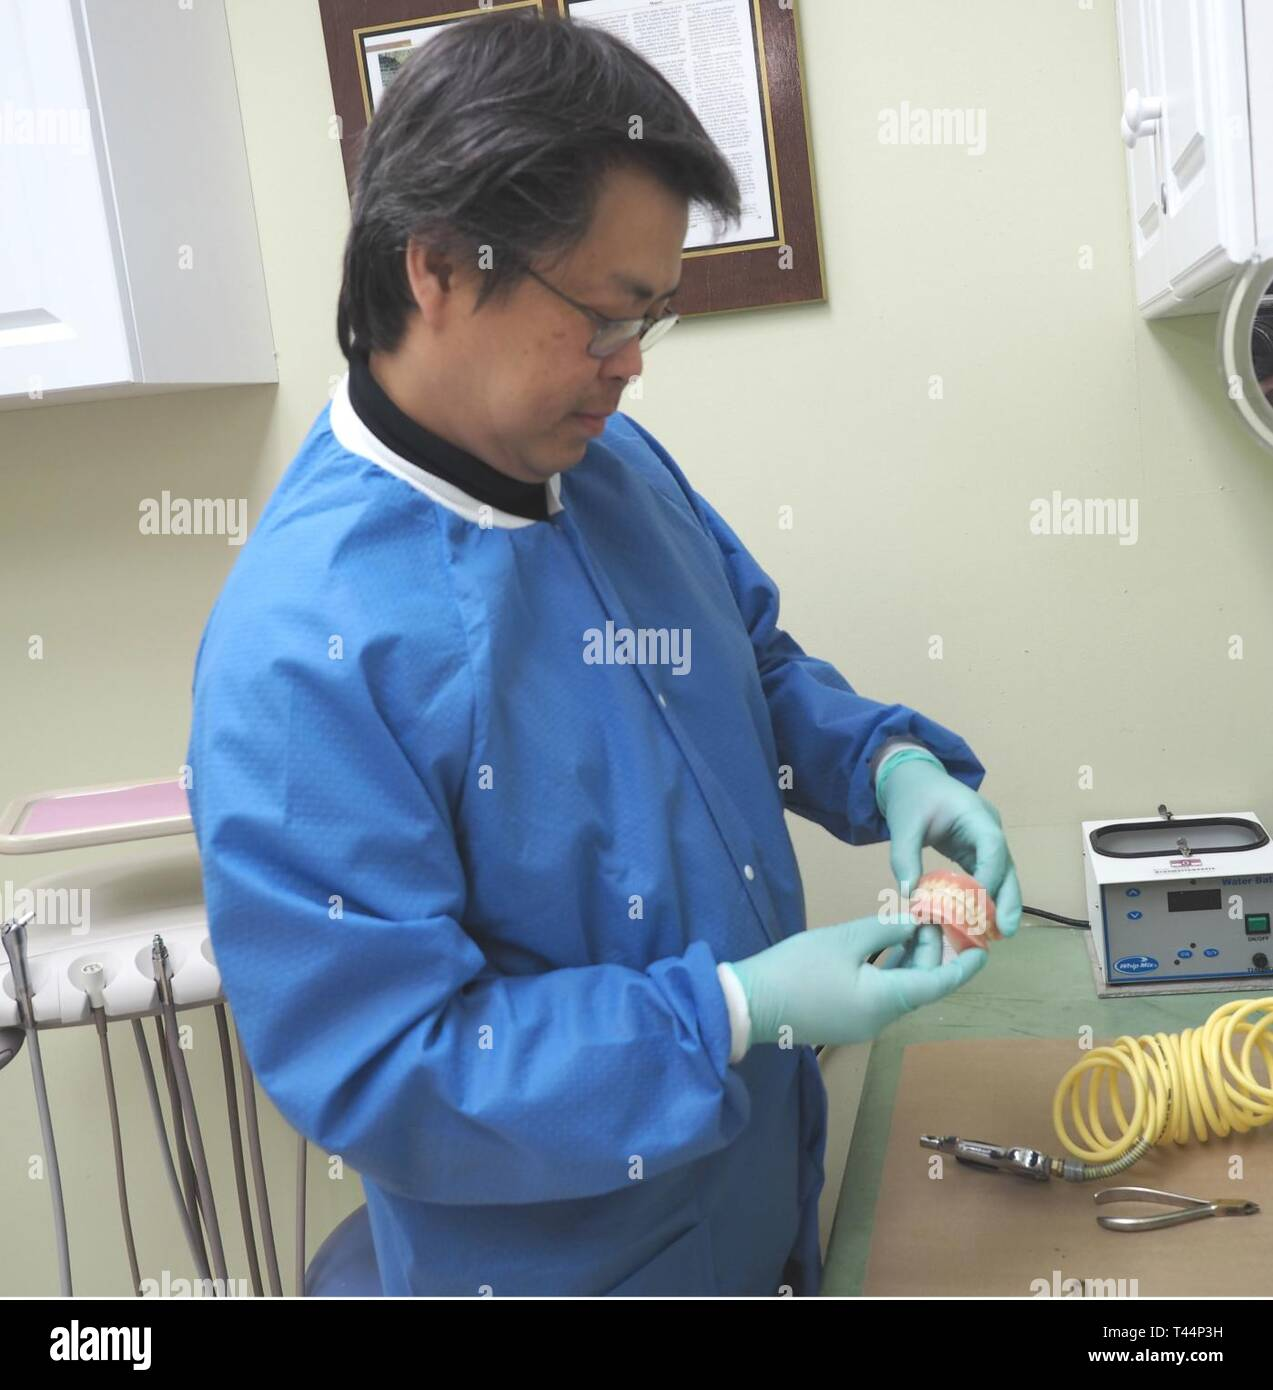 Holding a sample mold, Dr. Dai Phan explains the process of making them for the Veterans who use his service in the Columbia VA Health Care System at the Wm. Jennings Bryan Dorn VA Medical Center in Columbia, S.C. - Stock Image